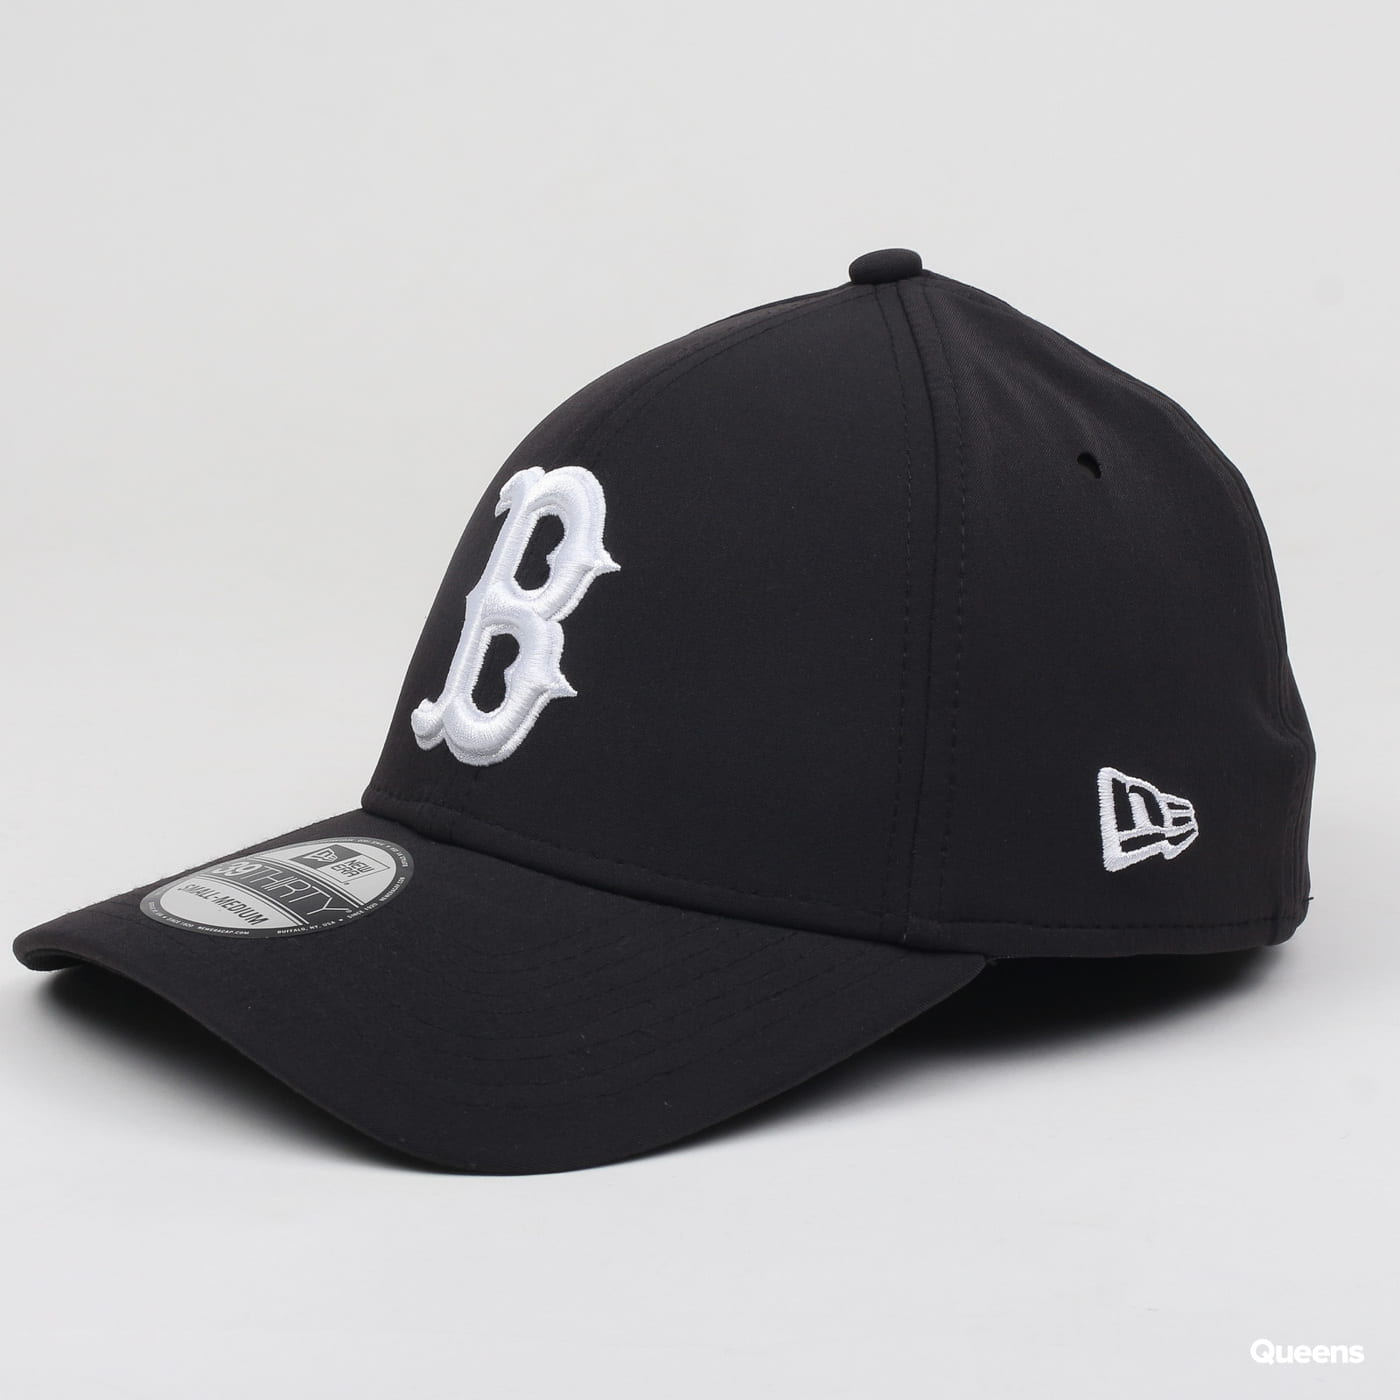 New Era 3930 Clean Team B schwarz